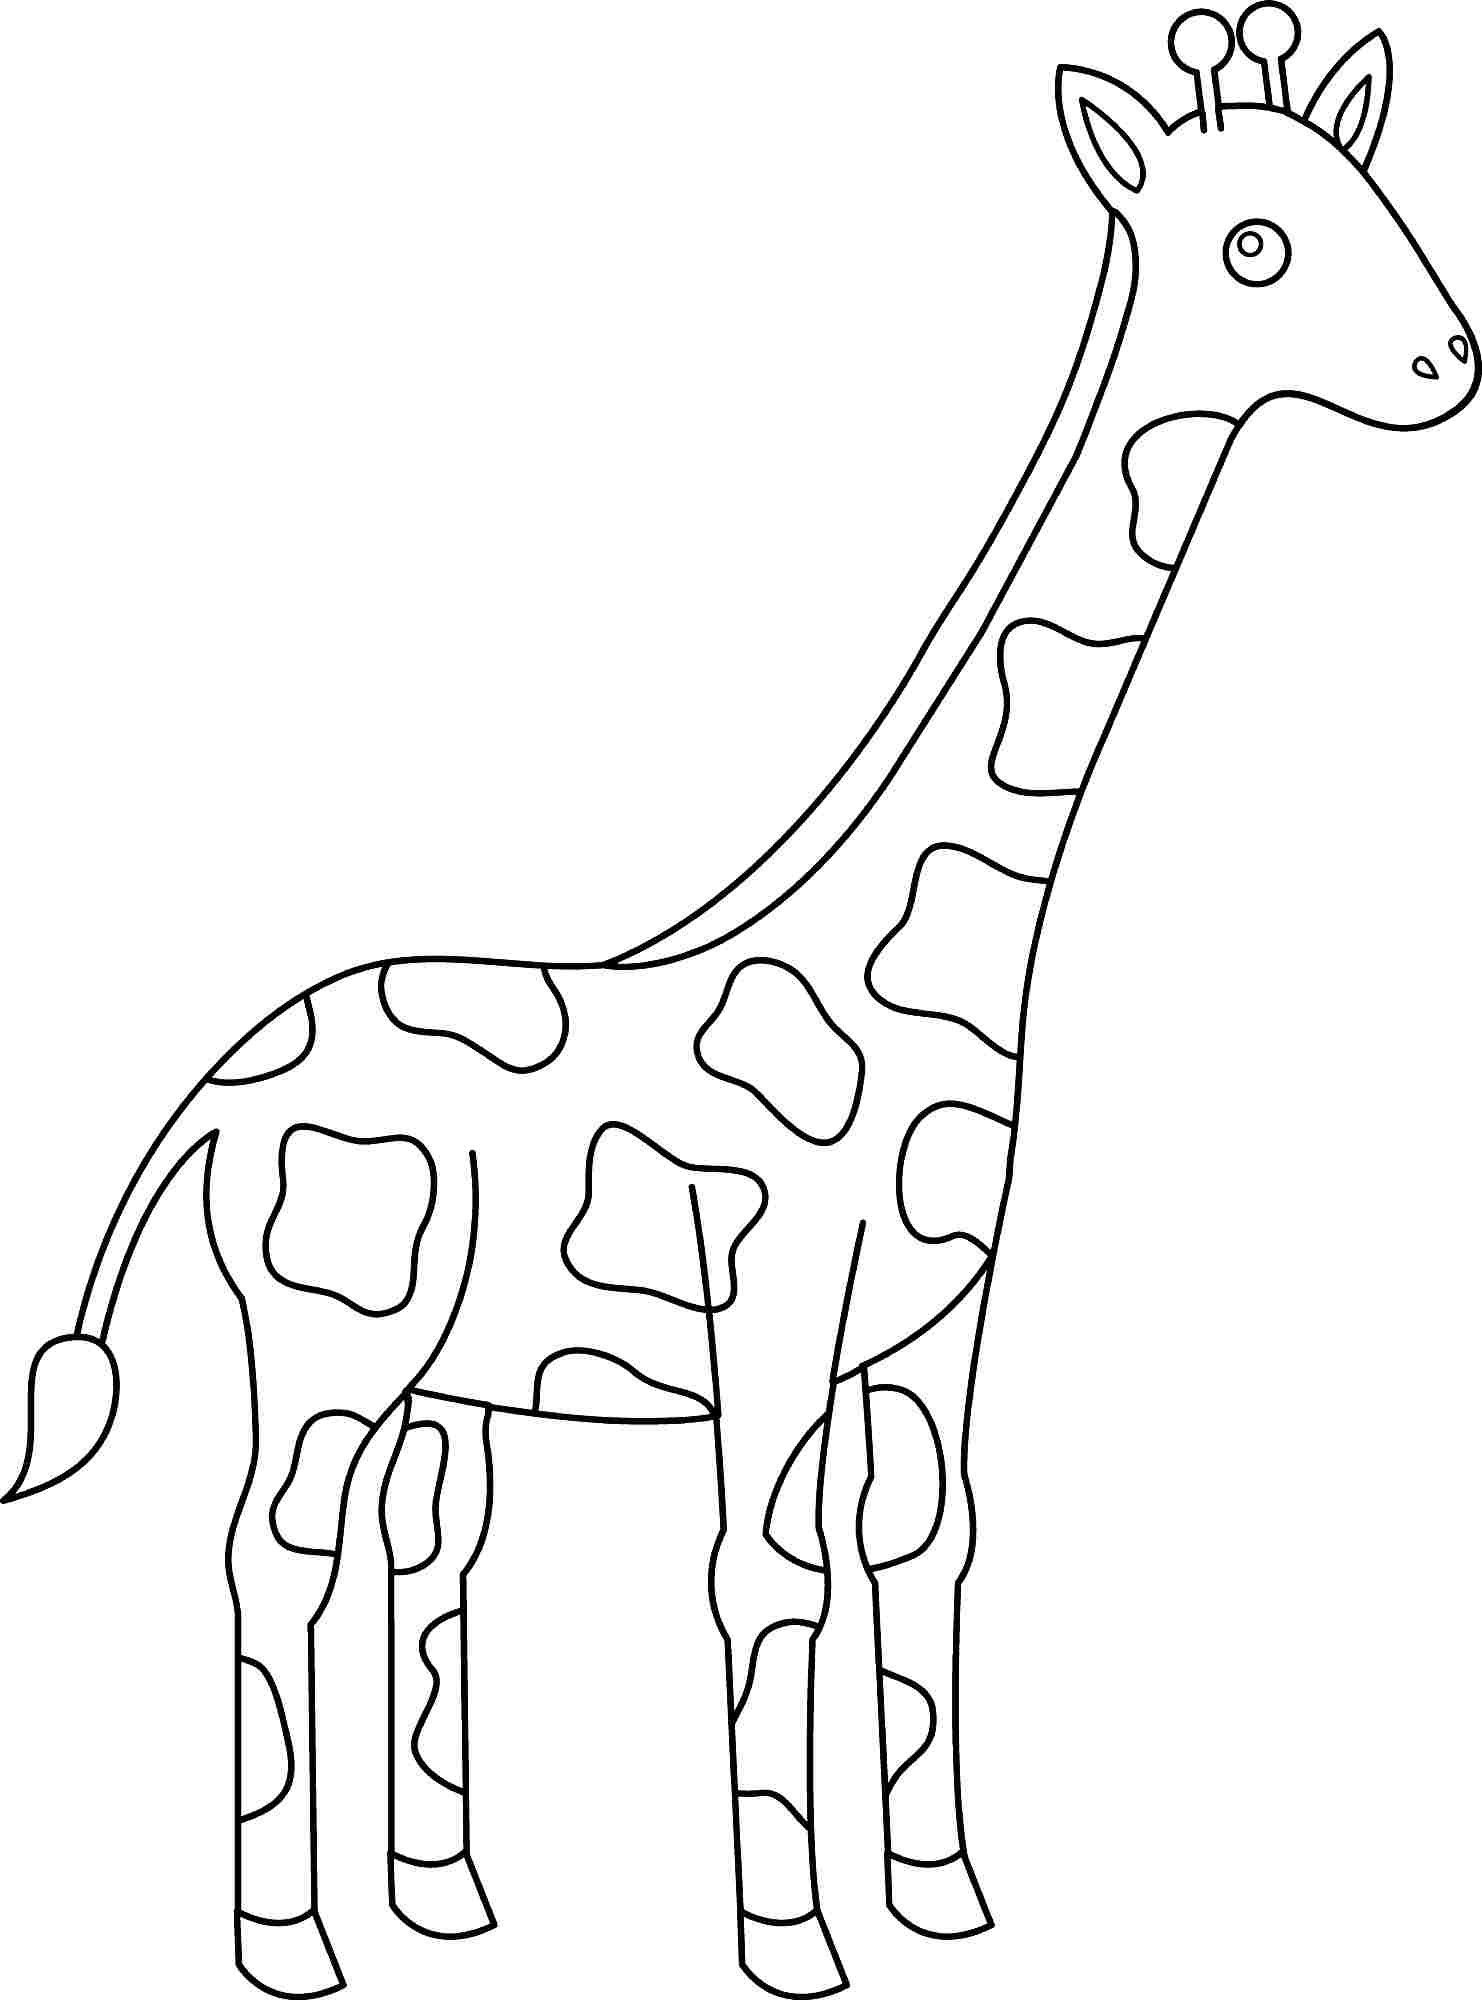 Cute Giraffe Coloring Pages Giraffe Coloring Pages Animal